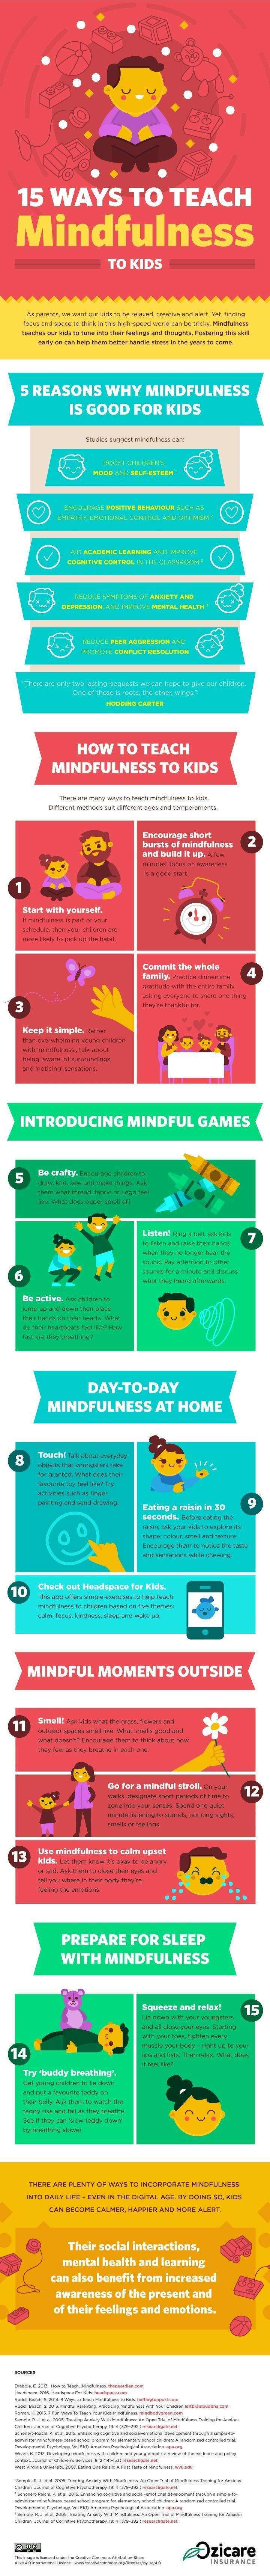 Best 14 Right-Brained Learning images on Pinterest   Homeschooling ...